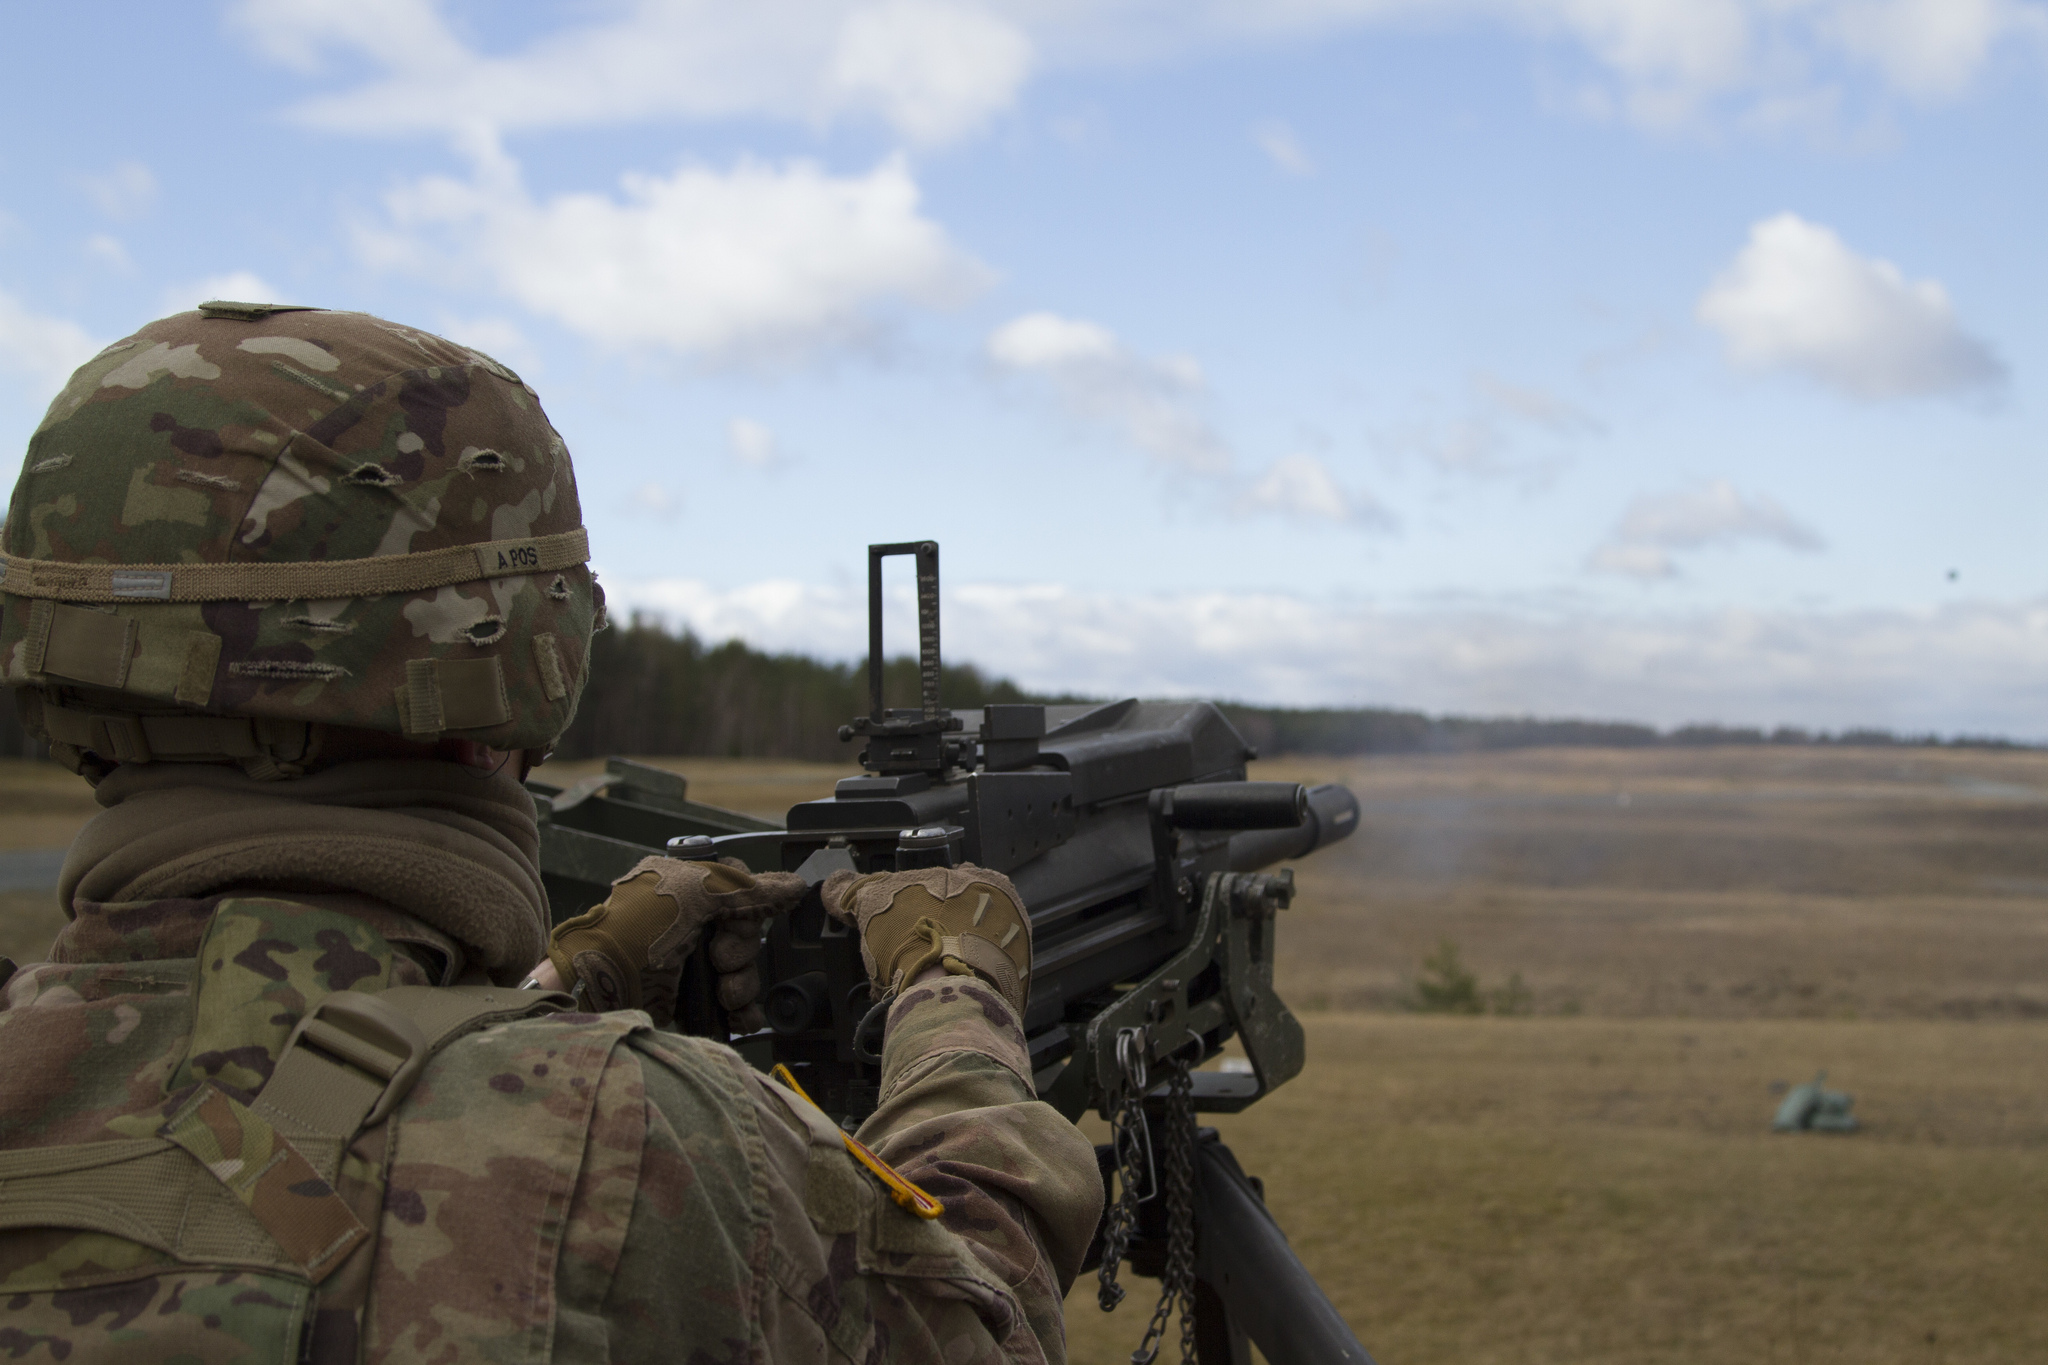 U.S. Army 1st Lt. Kevin A. Smith launches a grenade down range with the MK-19mm grenade machine gun March 13, 2019, at Grafenwoehr Training Area, Germany. (Spc. Yon Trimble/Army)